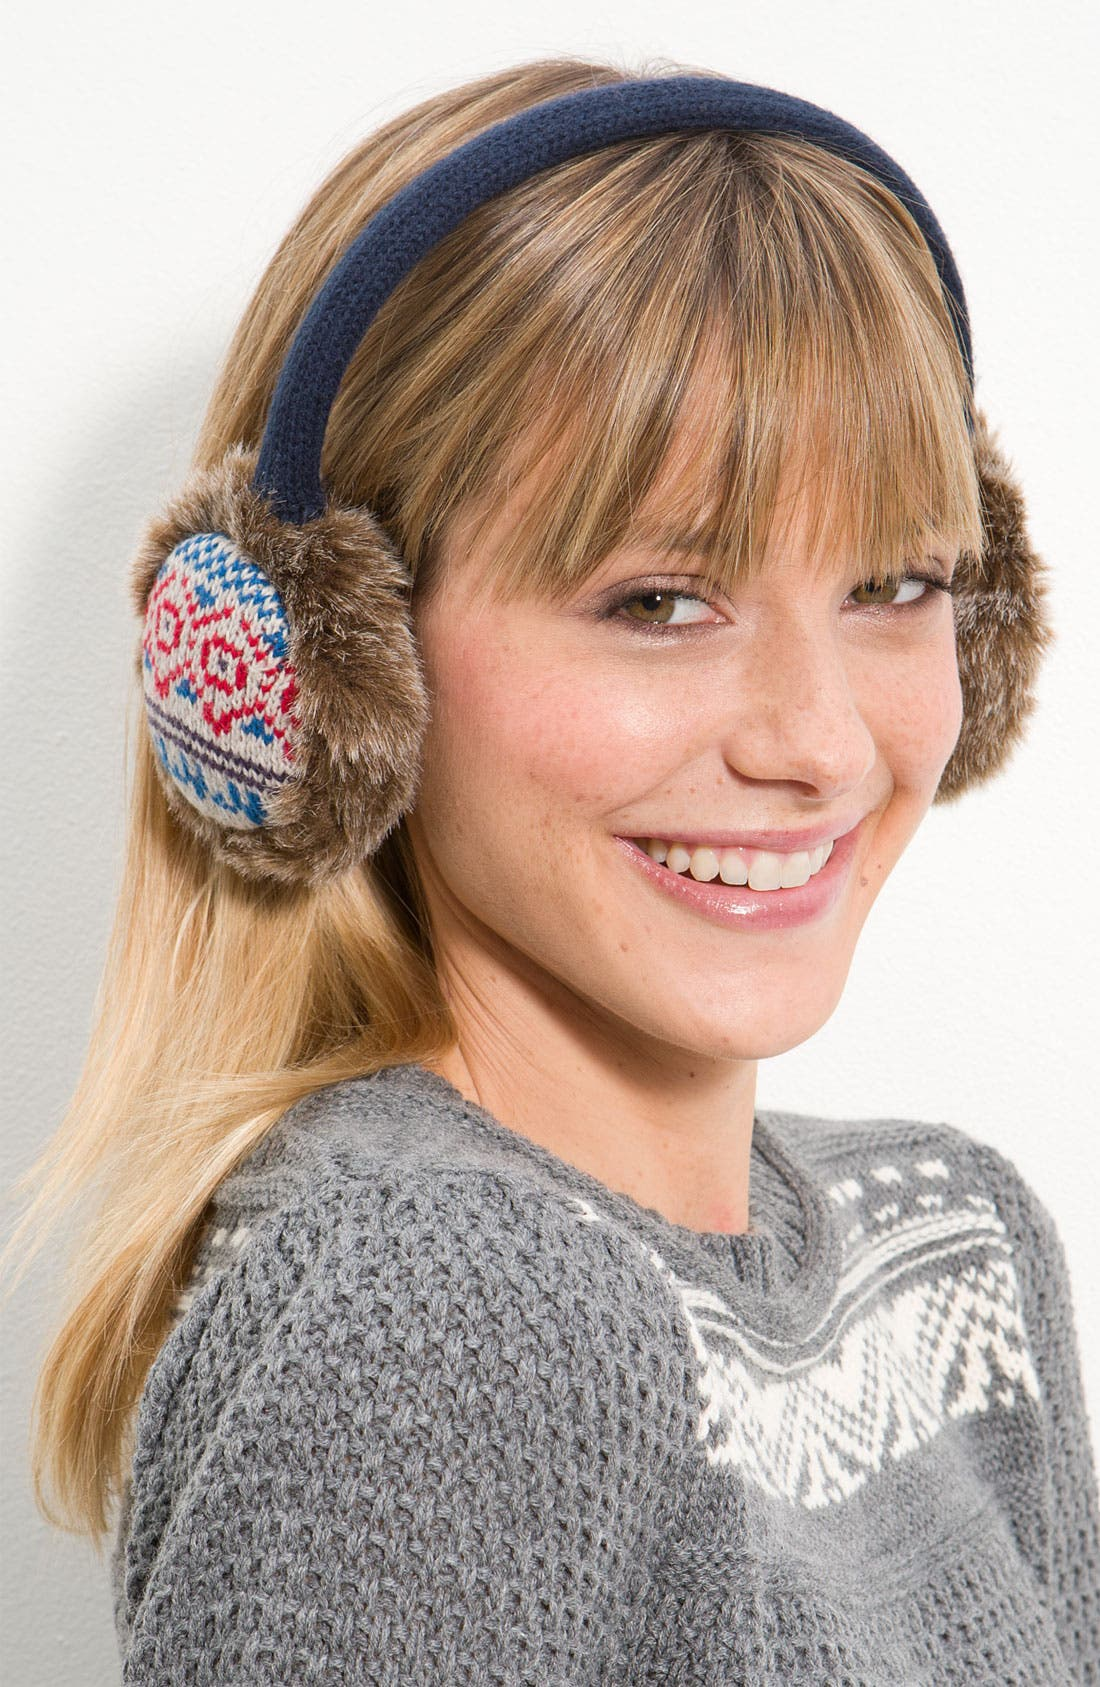 Alternate Image 1 Selected - The Accessory Collective Nordic Knit Earmuff With Faux Fur Trim